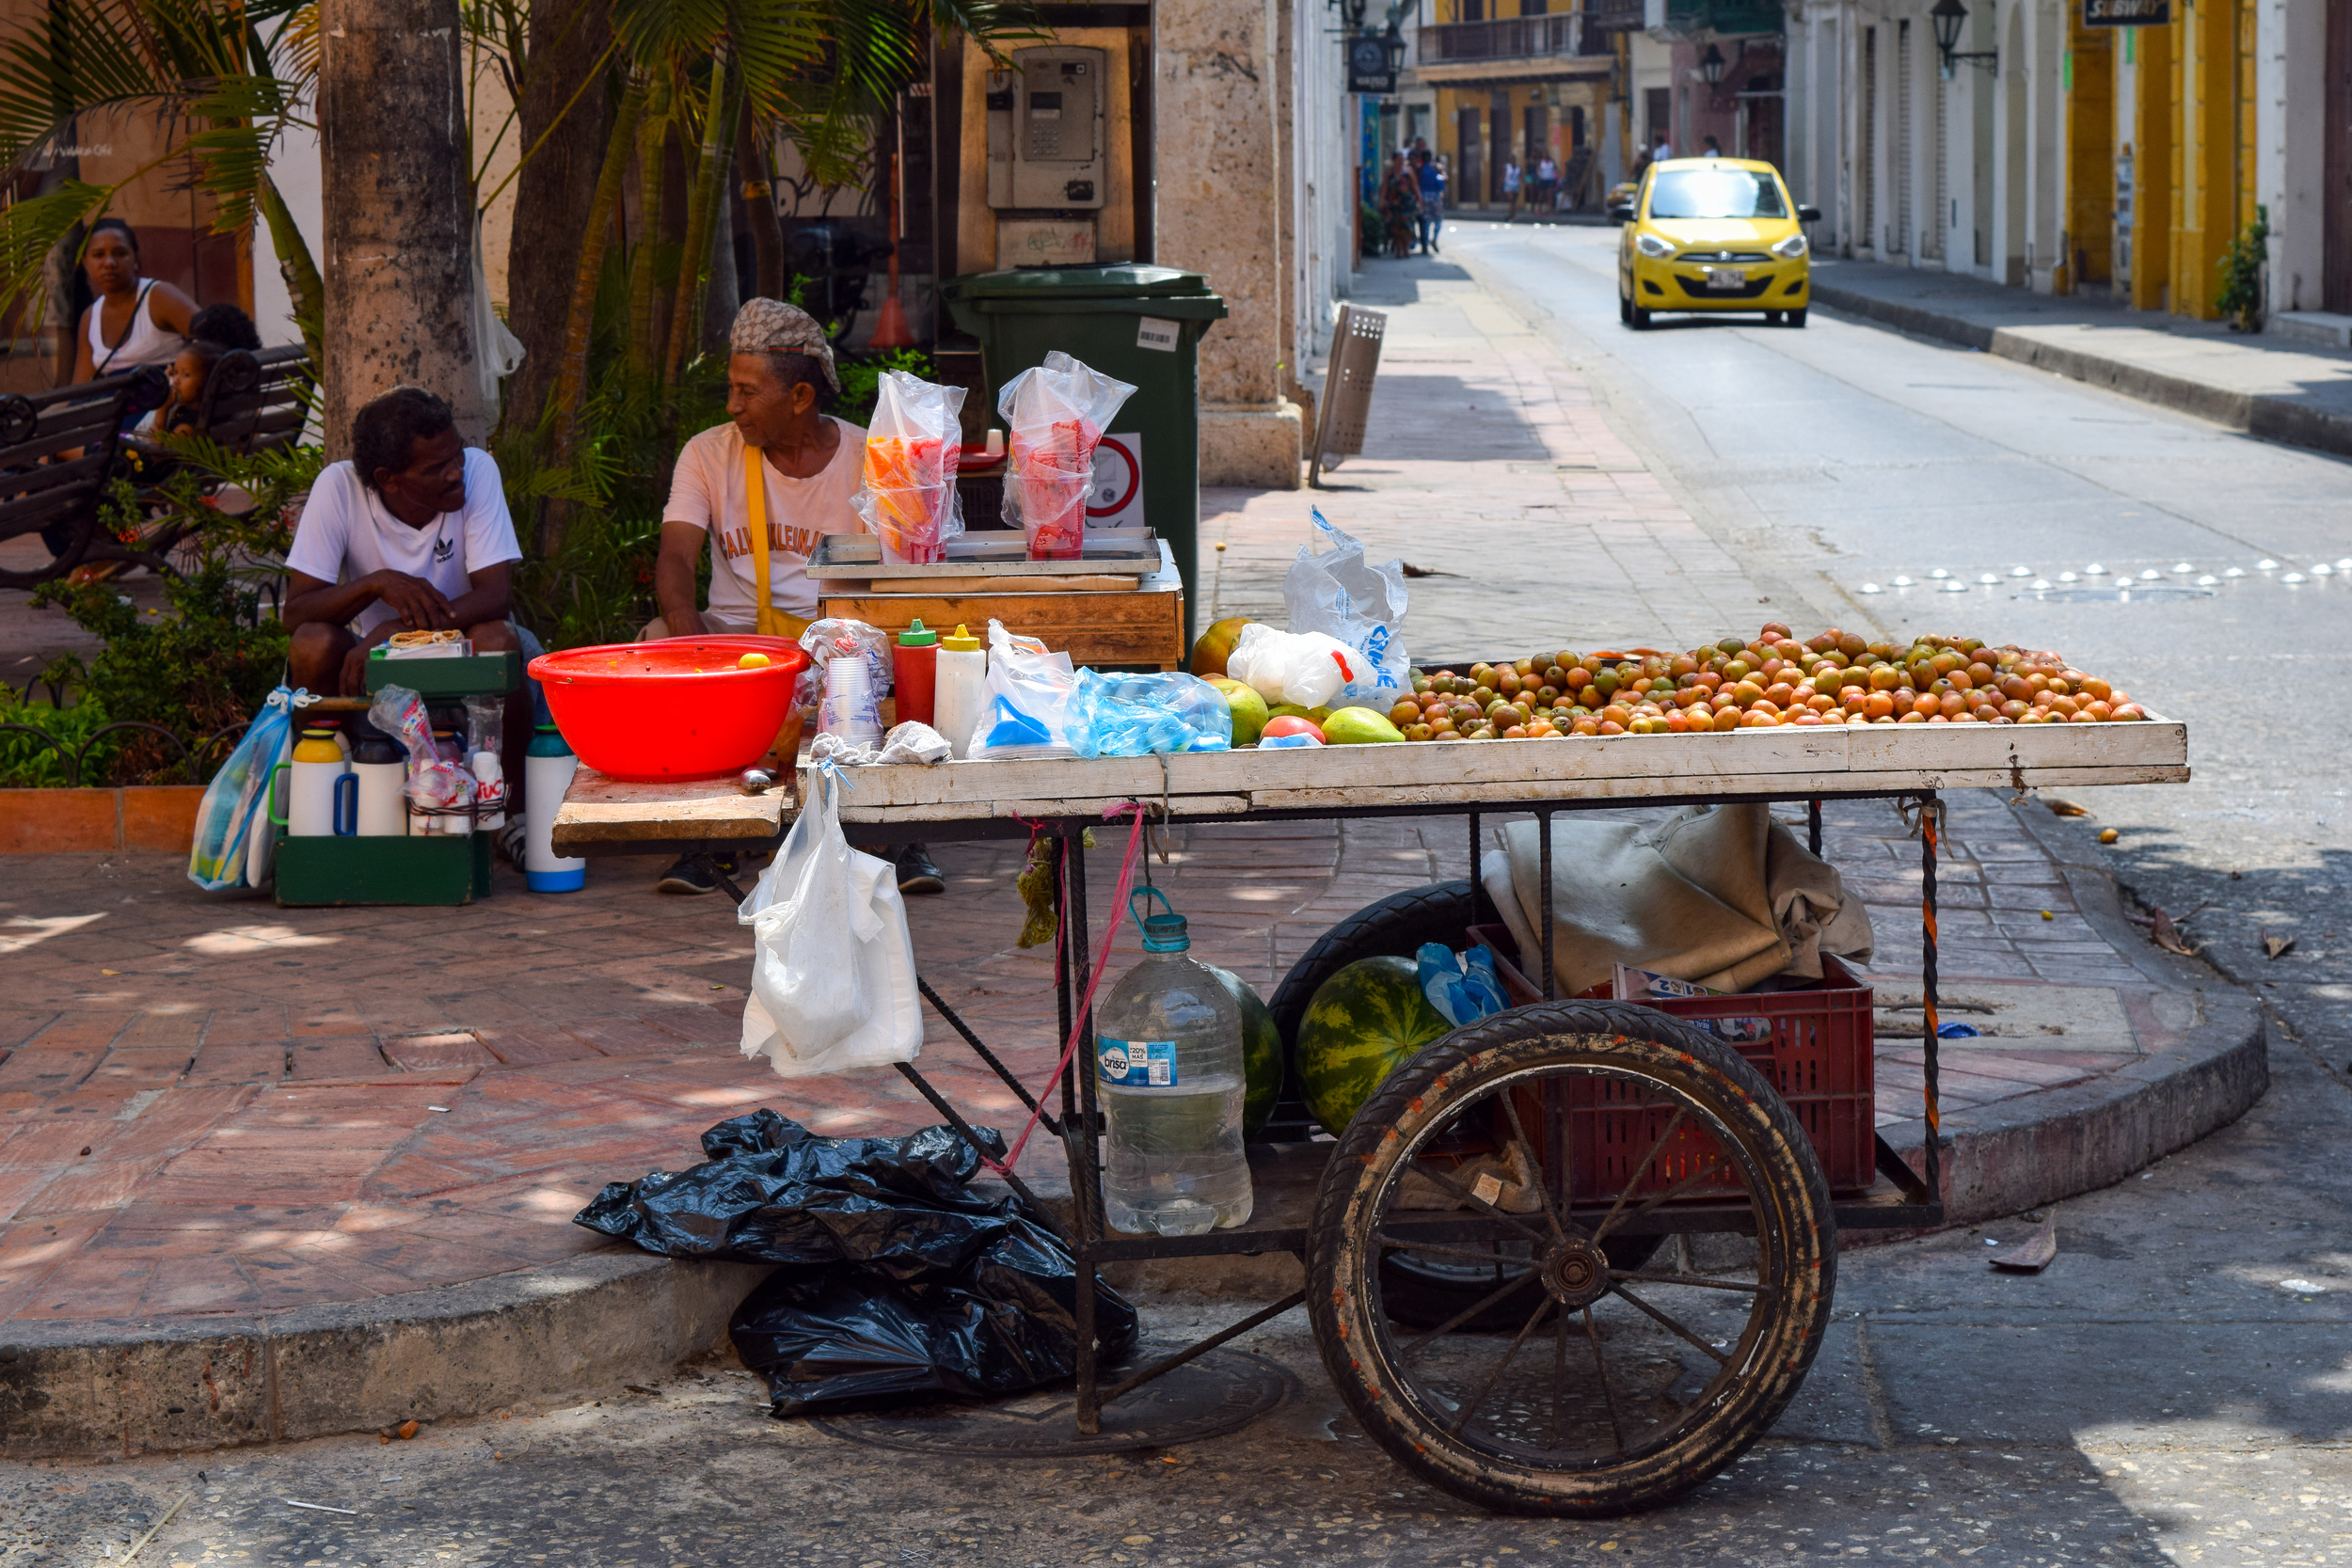 Street vendors and fruit